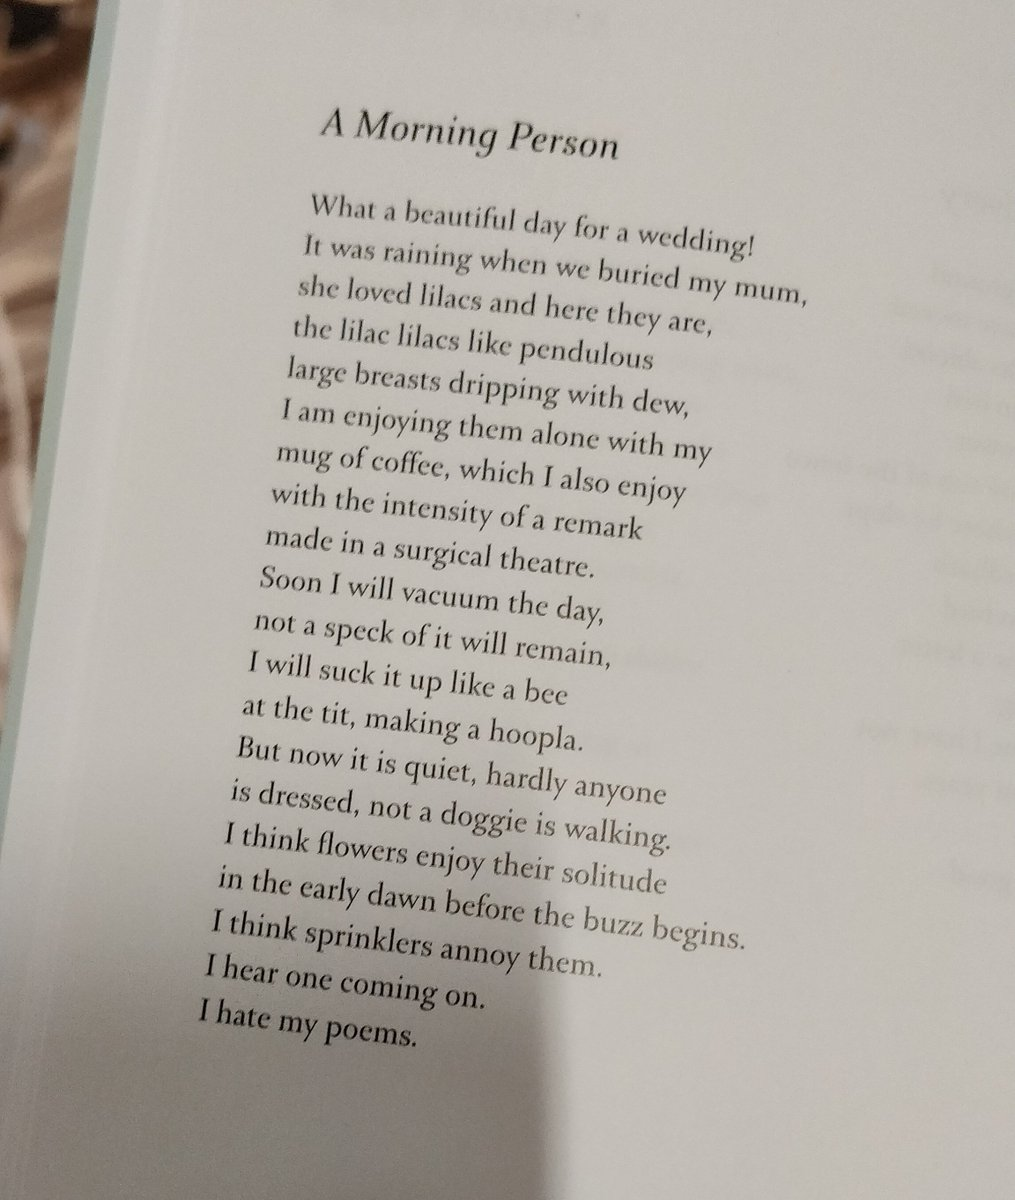 test Twitter Media - RT @micklemccann: 💐 I hear one coming on. — Mary Ruefle in most recent Poetry Review 💐 @PoetrySociety https://t.co/WSLD4fqWex